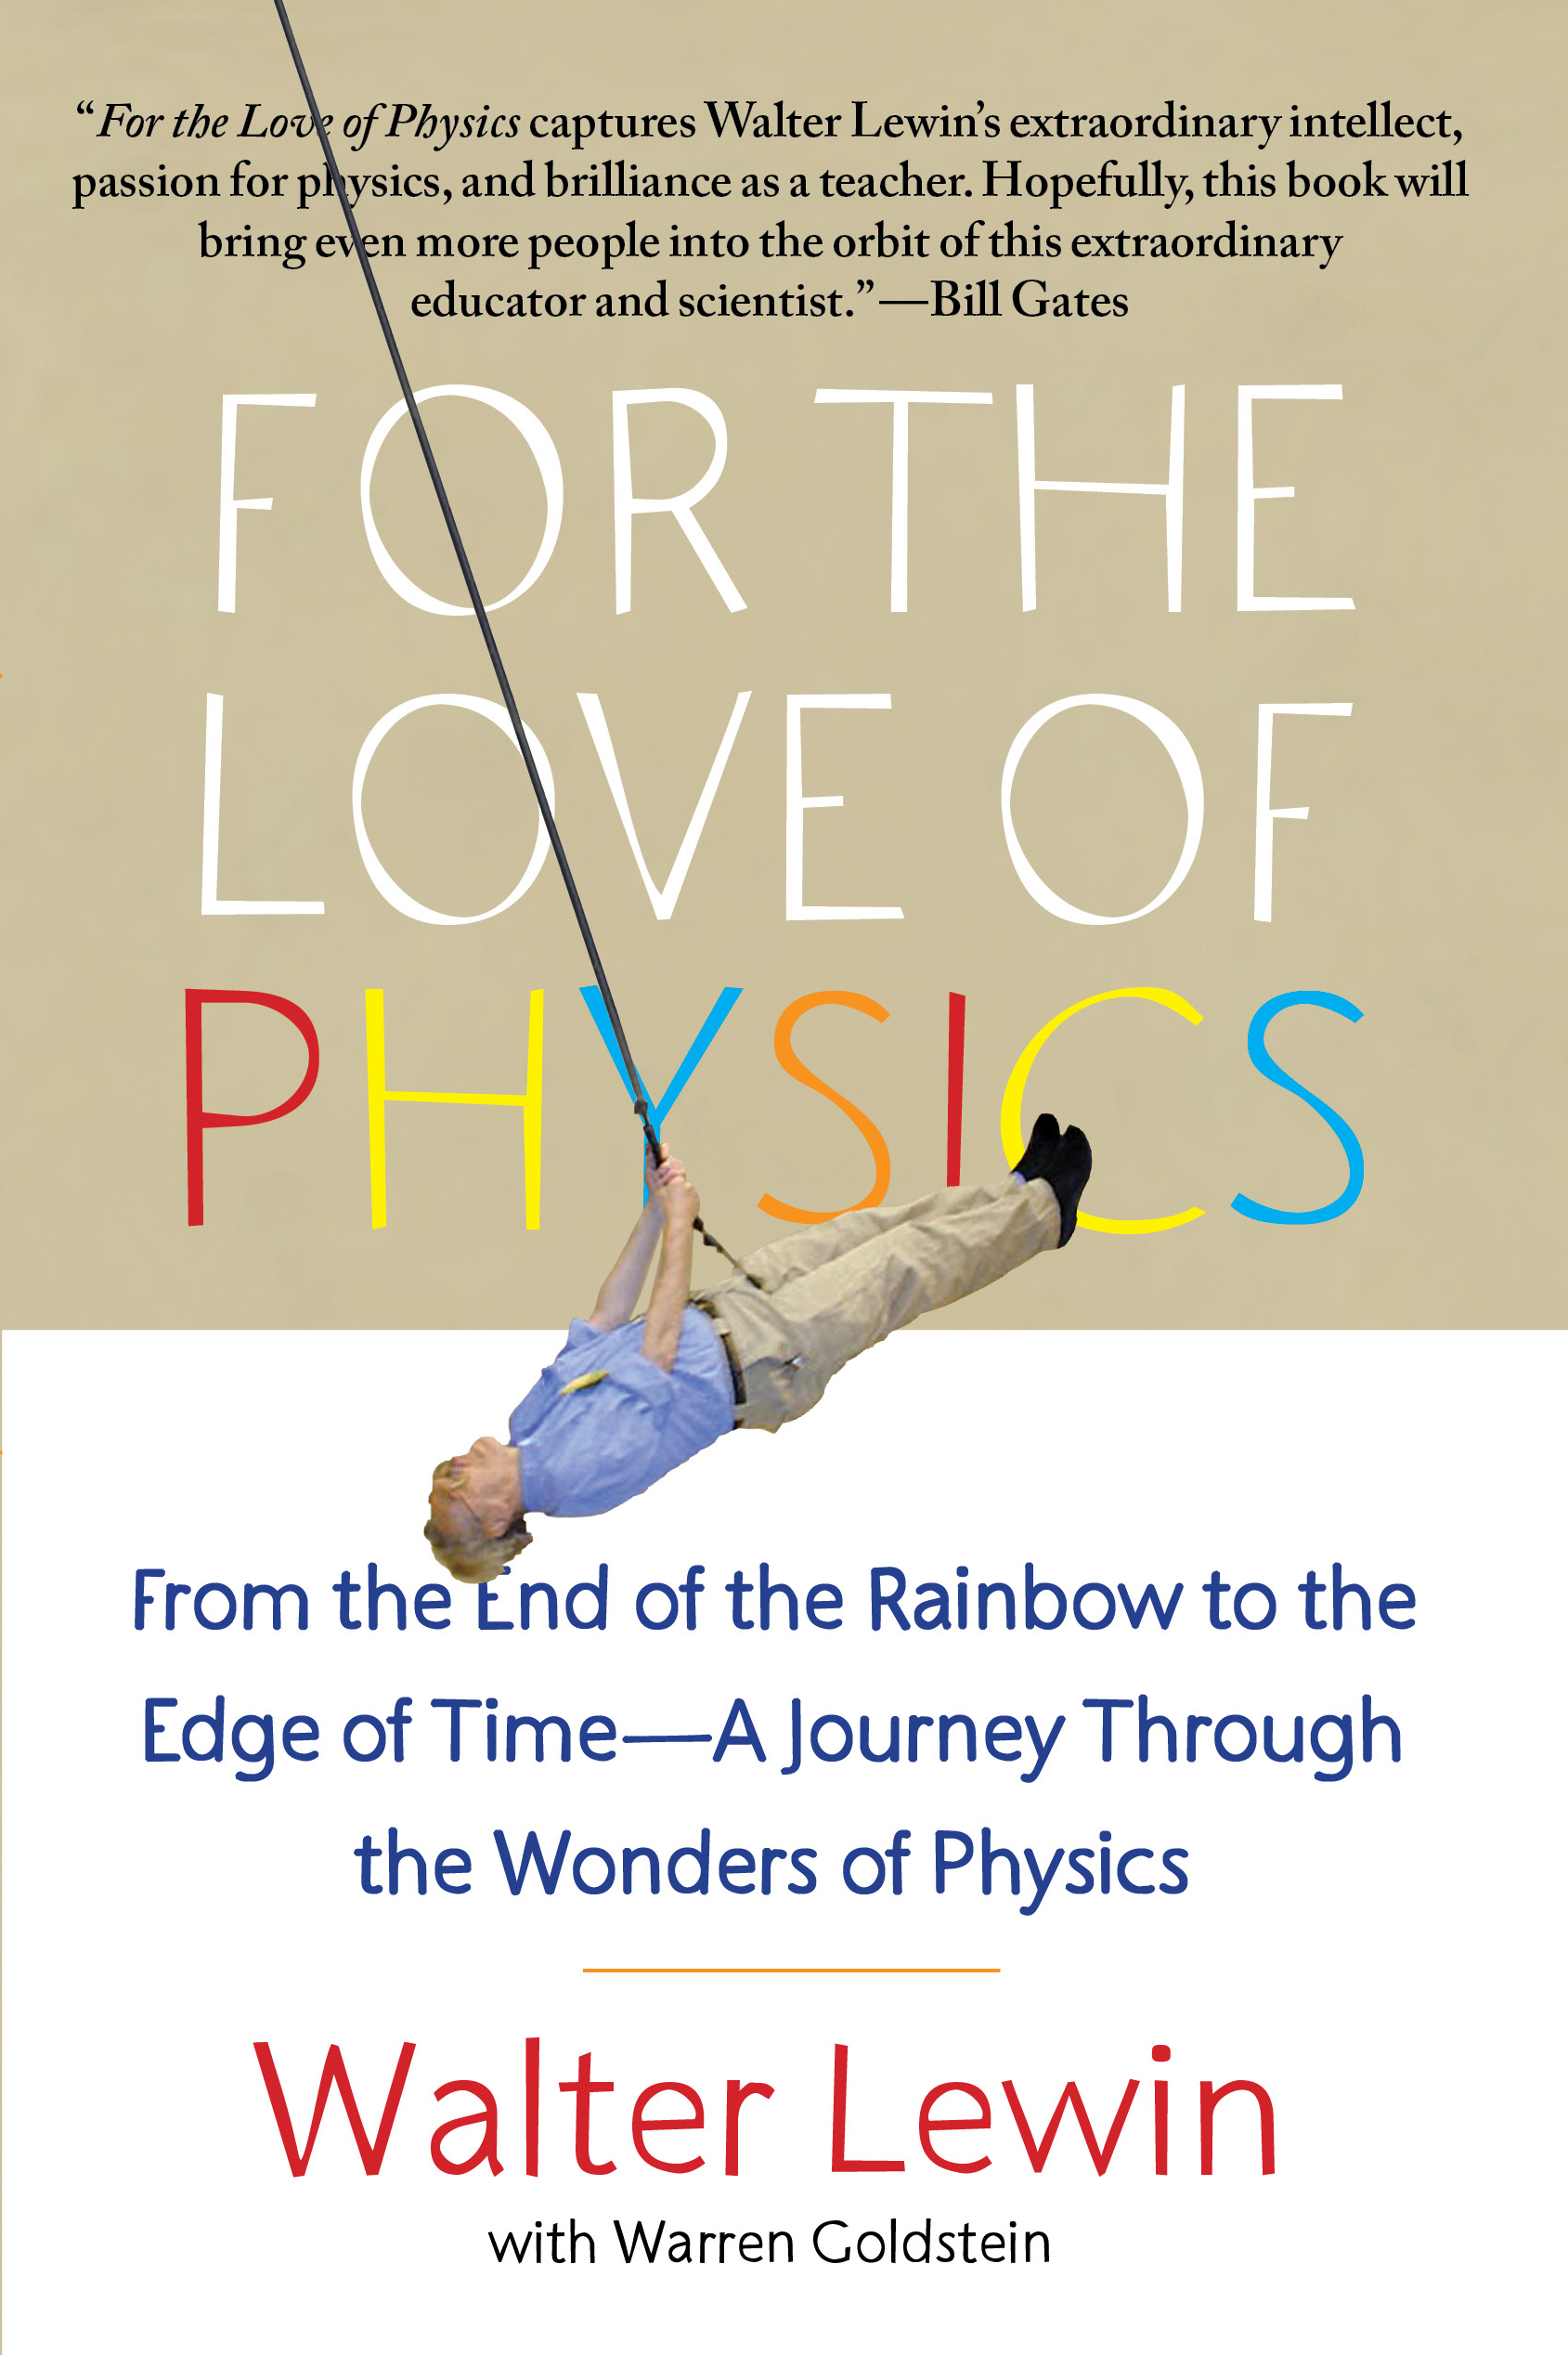 For the love of physics book by walter lewin warren goldstein book cover image jpg for the love of physics fandeluxe Image collections